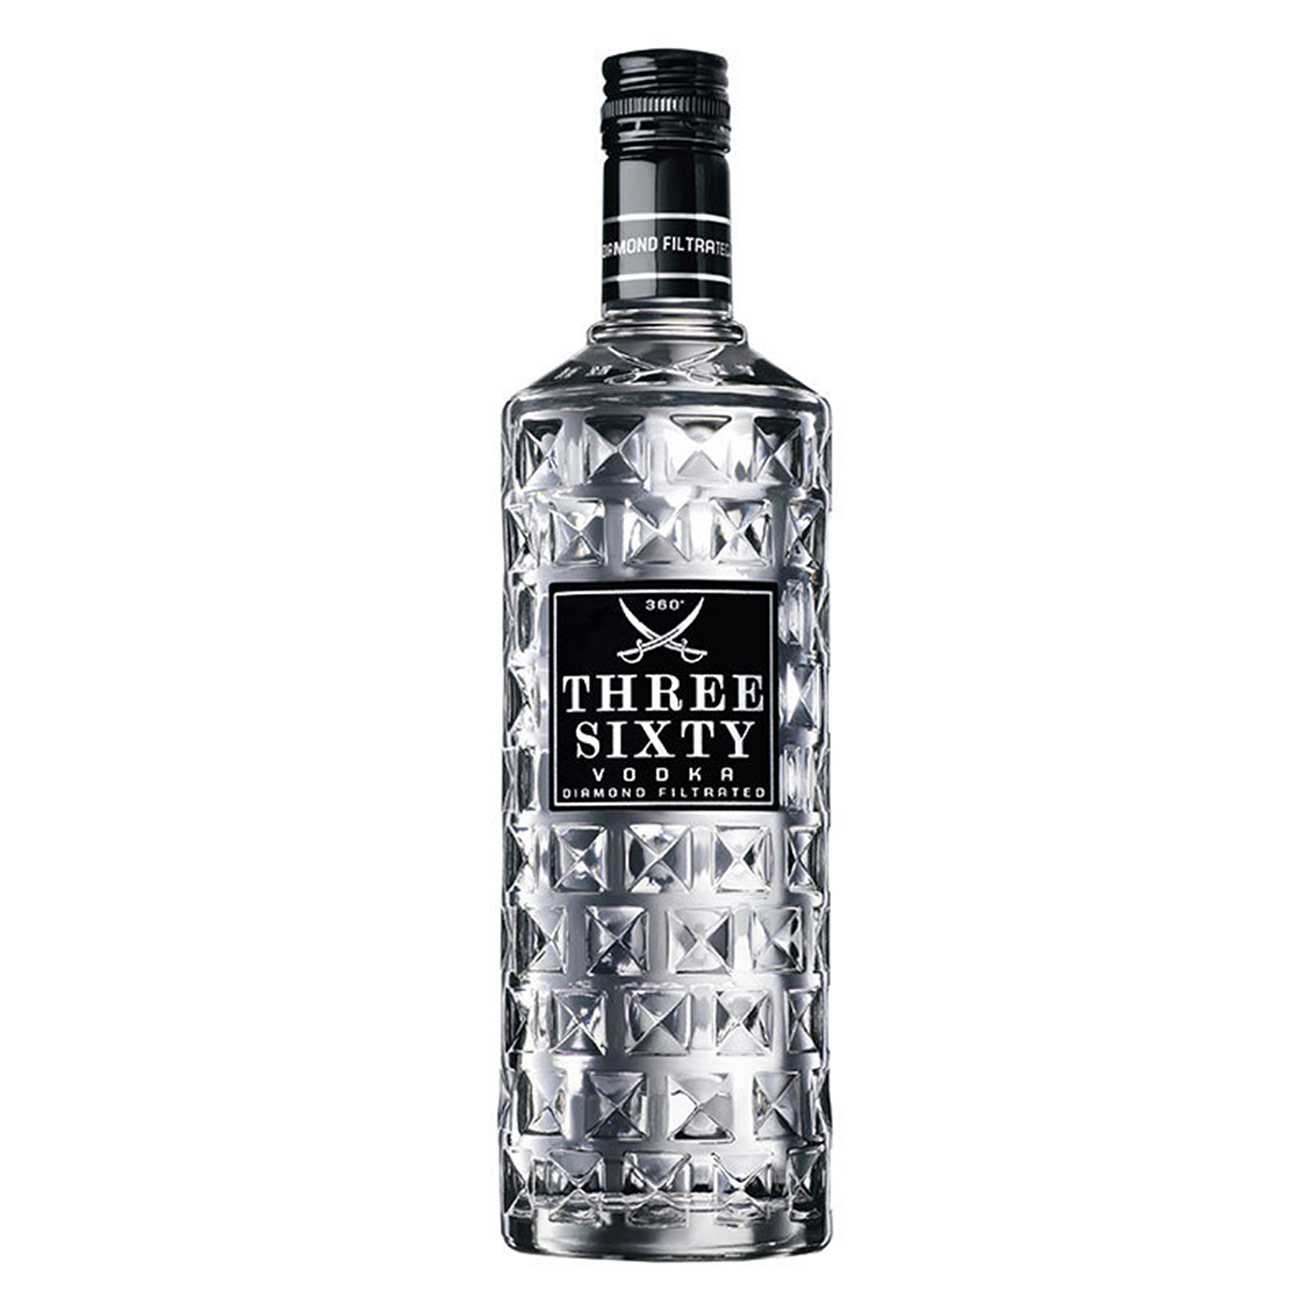 Vodka, THREE SIXTY 1000 ML, Three Sixty